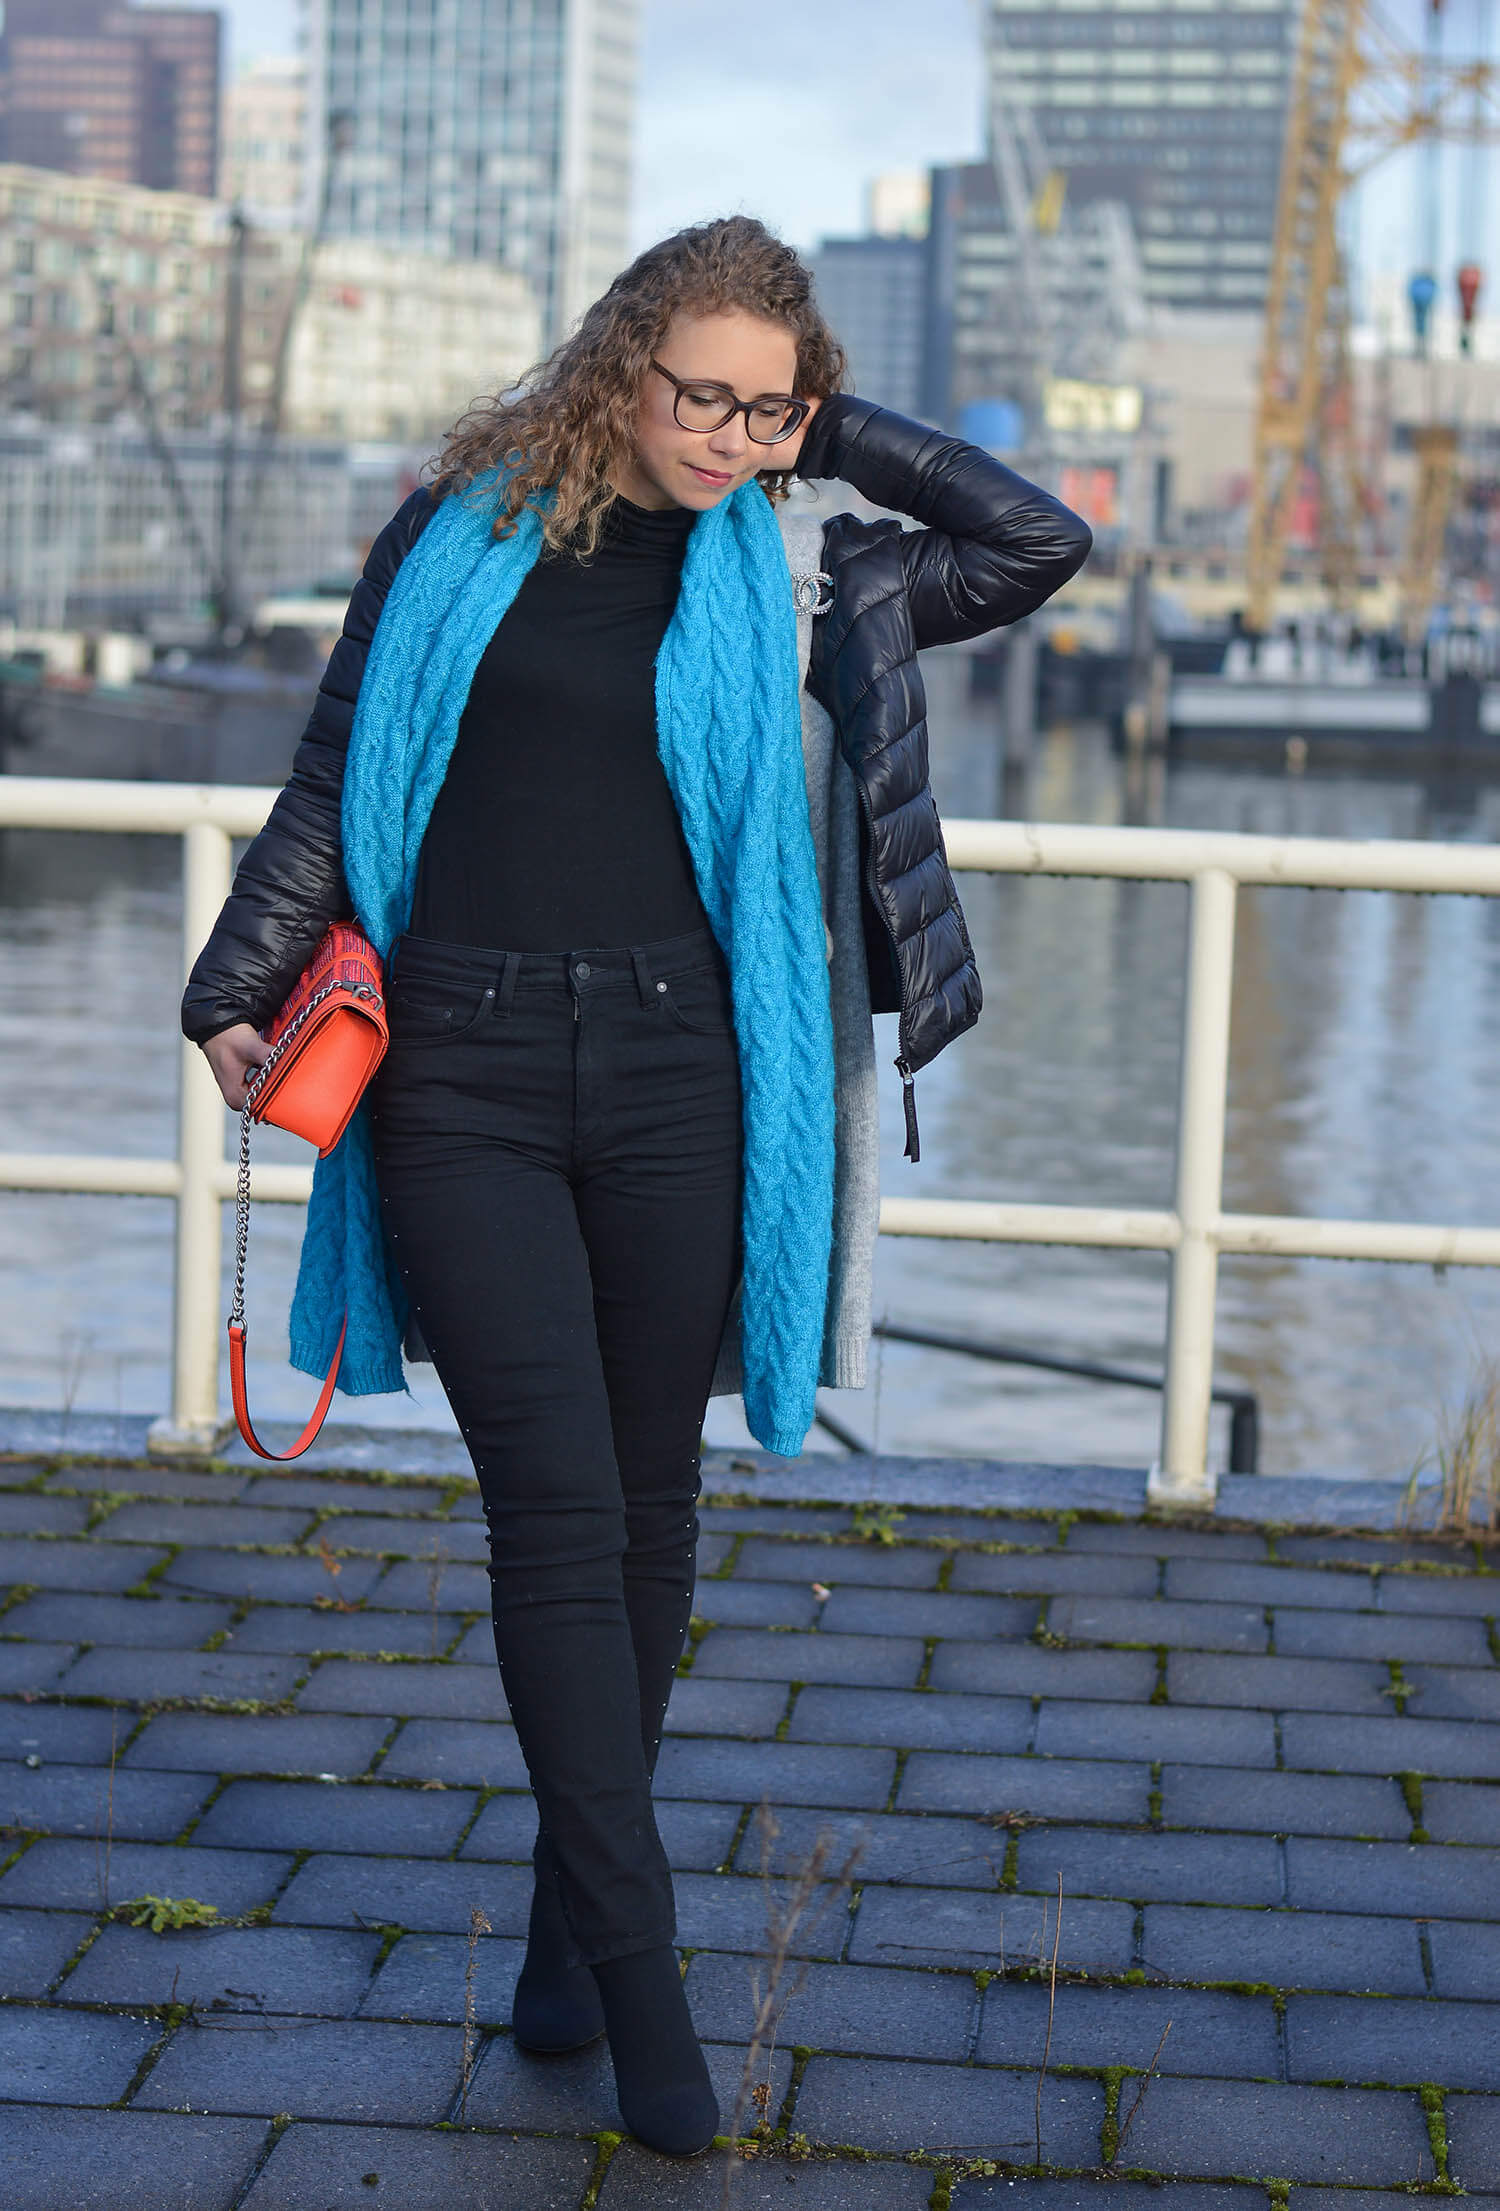 Outfit-Studded-Denim-Long-Cardigan-Sock-Boots-and-Zara-Scarf-Rotterdam-kationette-fashionblogger-streetstyle